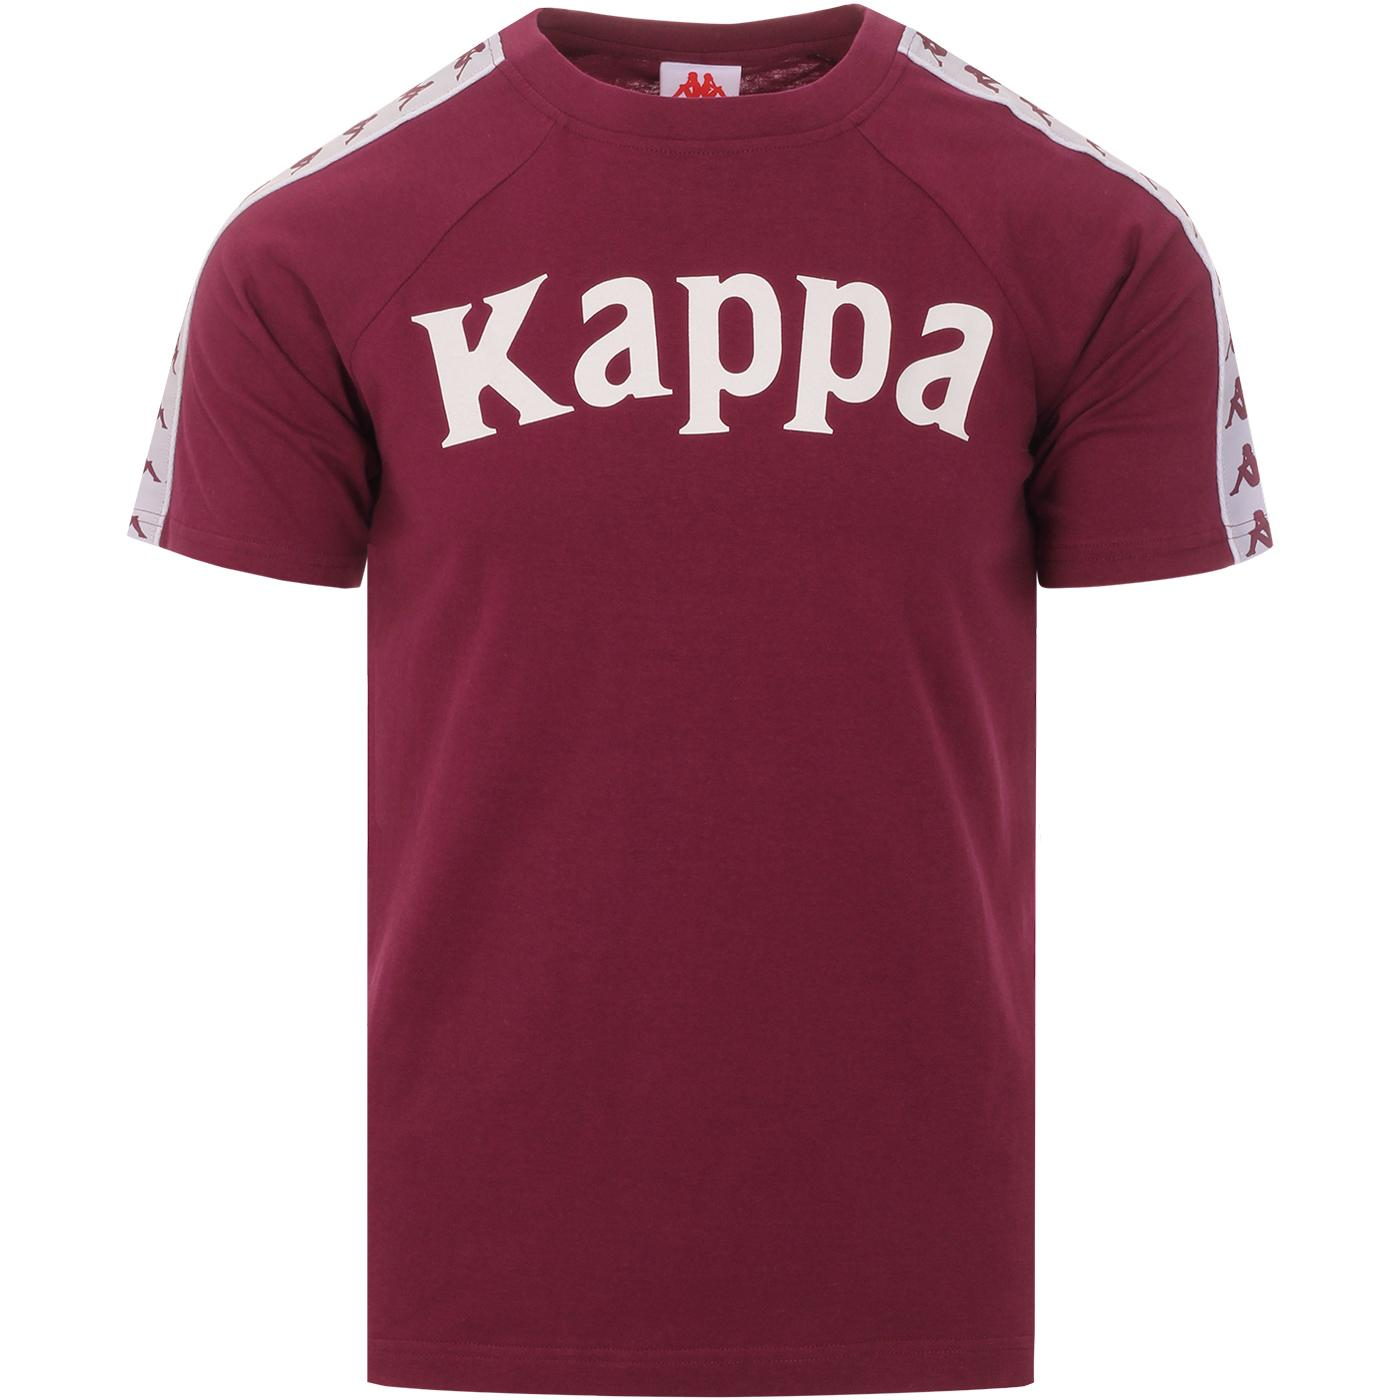 Balima KAPPA Retro 222 Banda Taped Sleeve Logo Tee